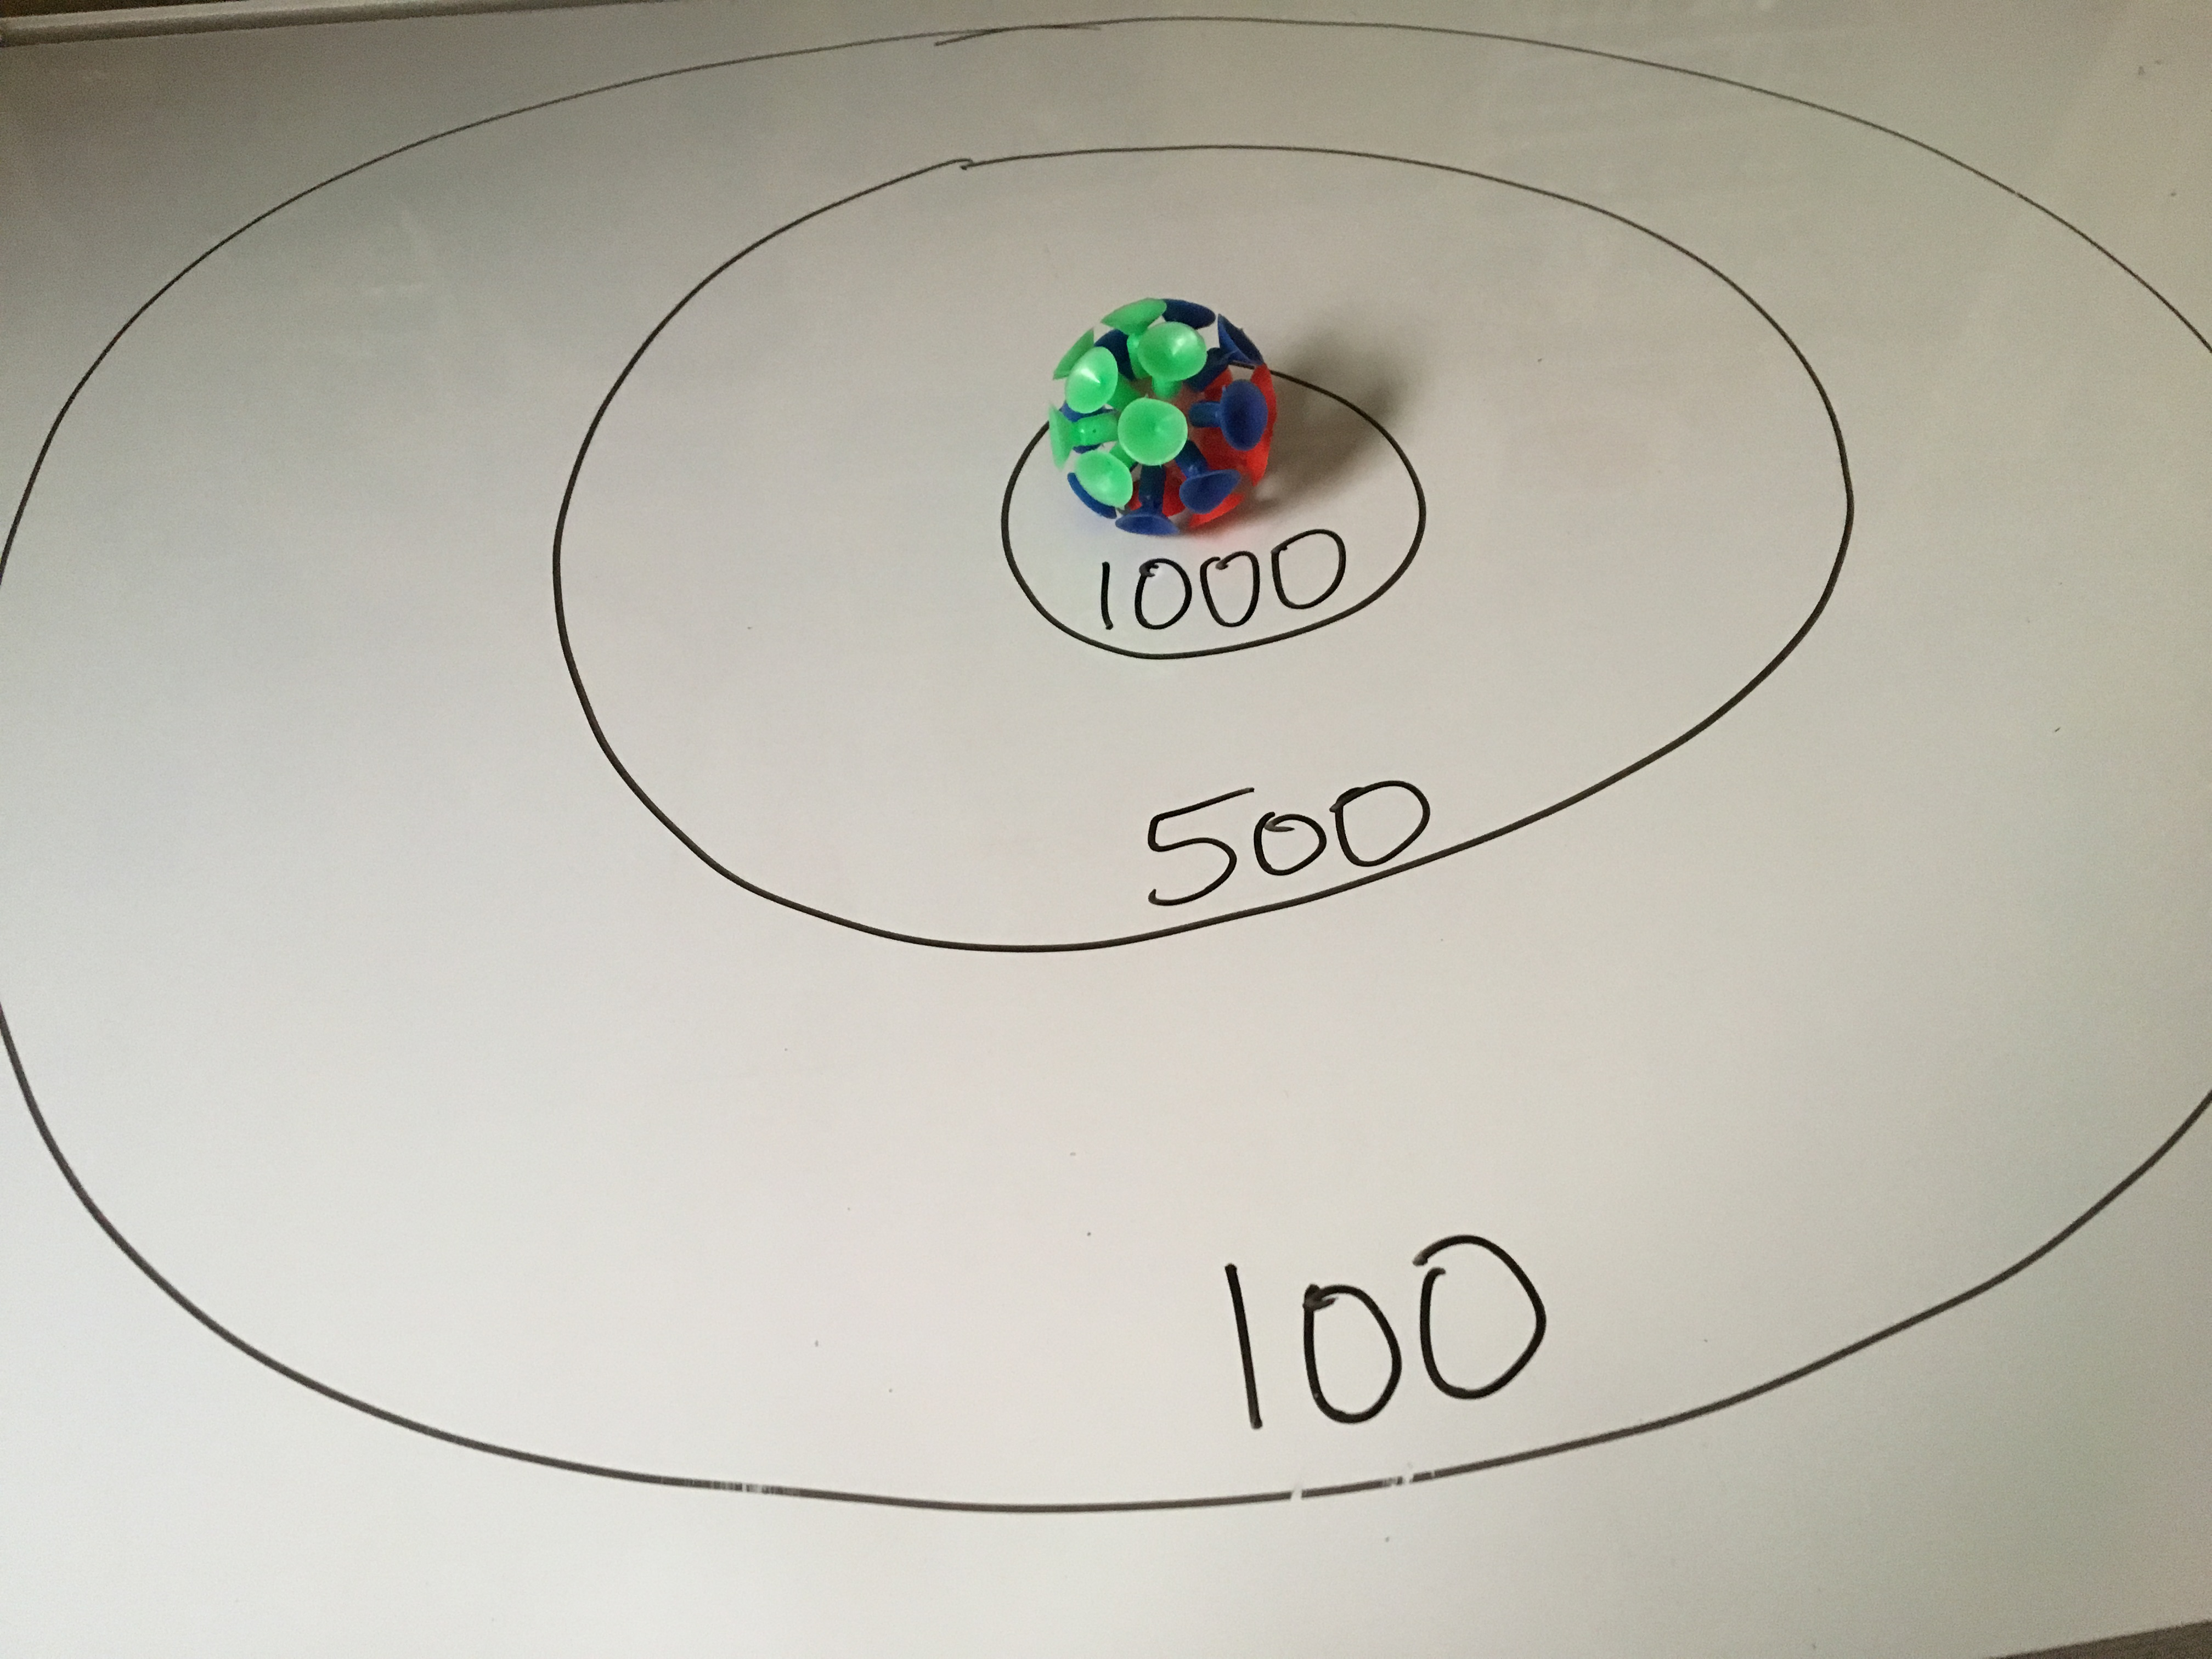 medium resolution of Math Review Game Strategy That Works: The Target Game - Idea Galaxy